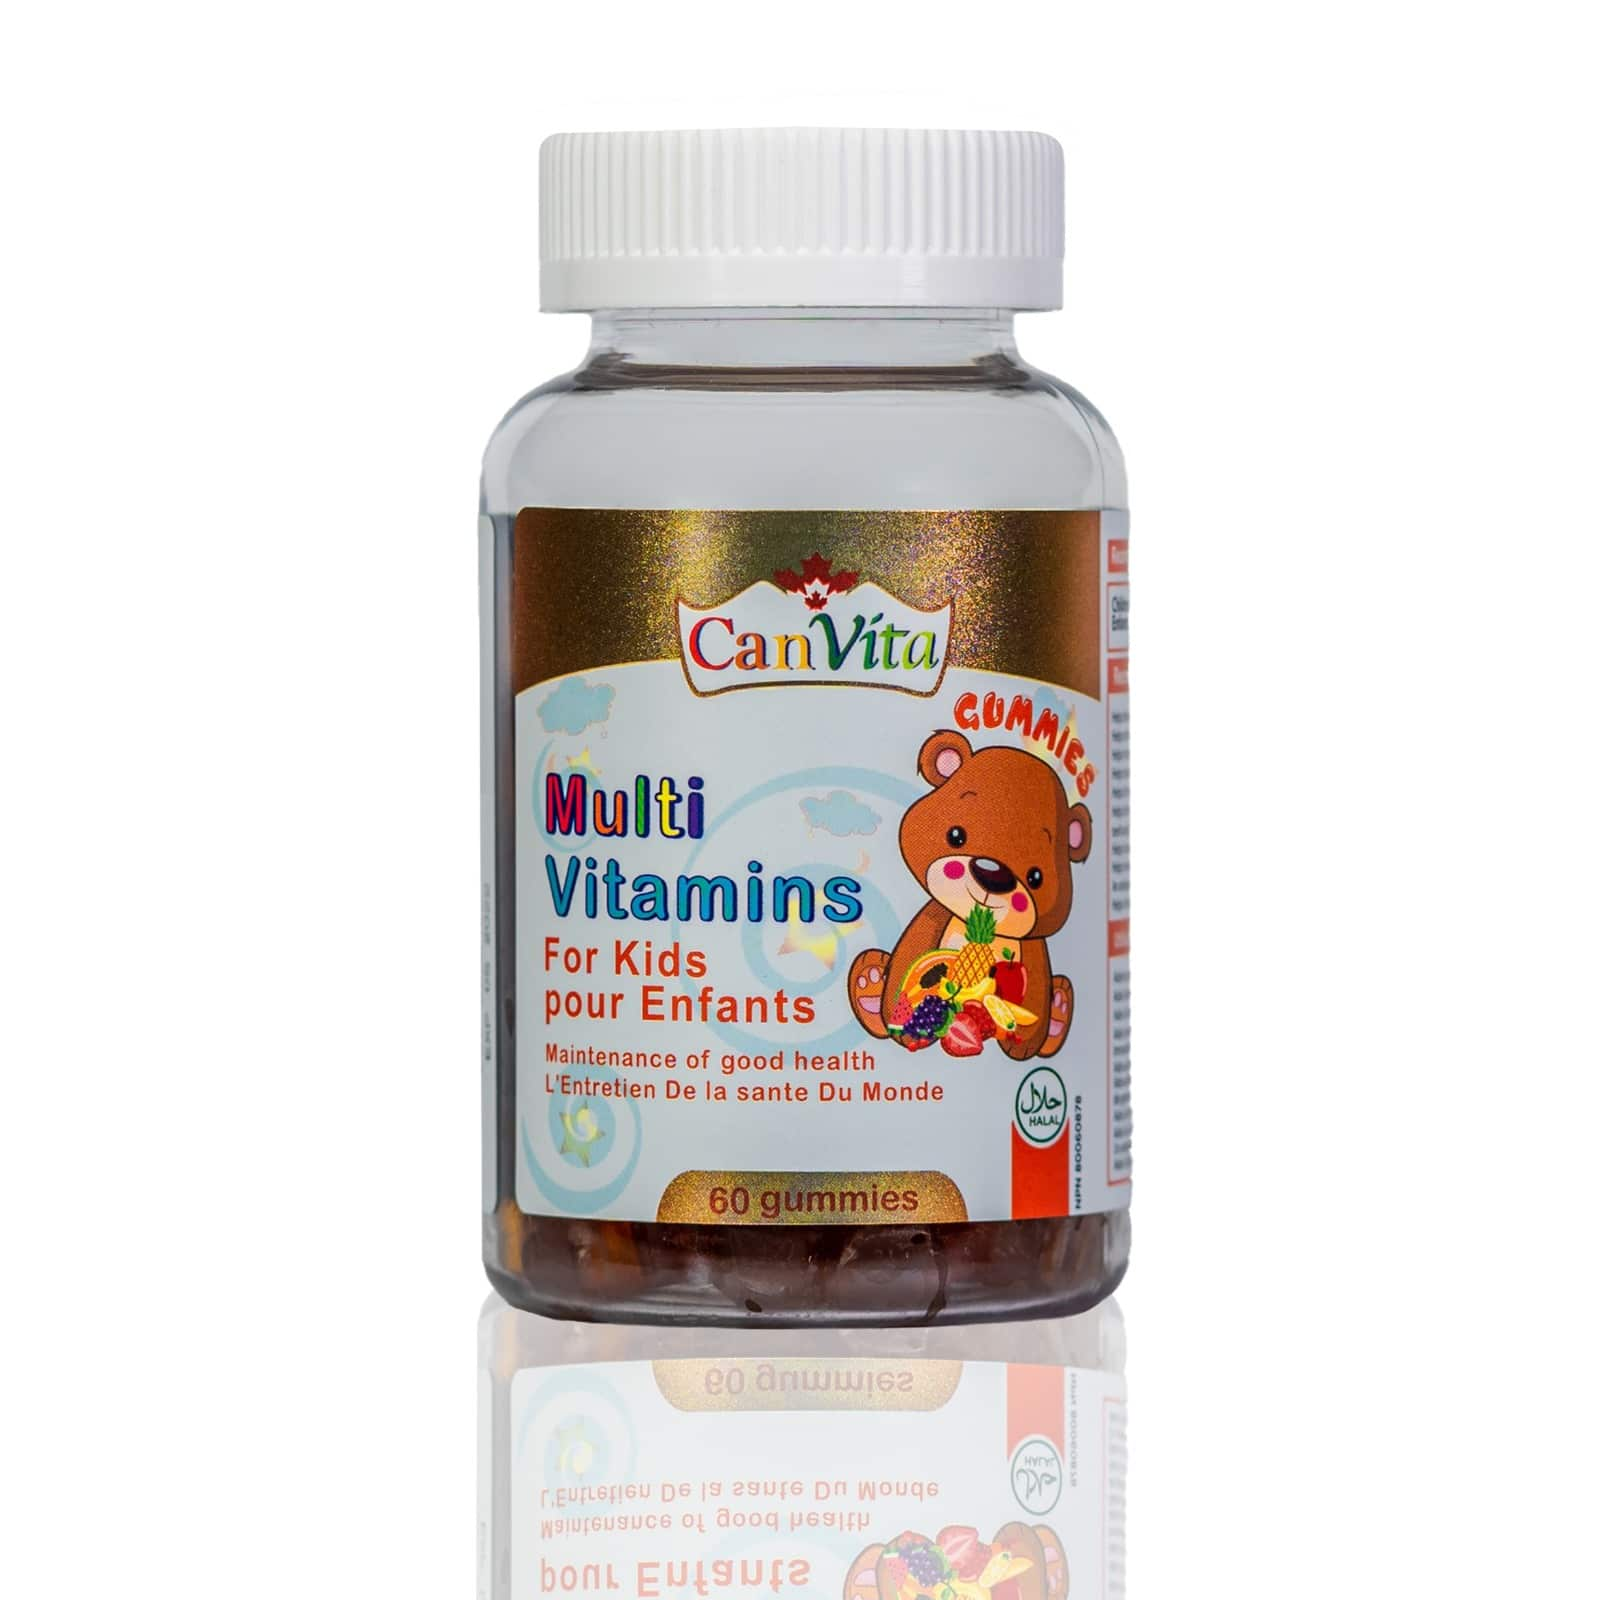 Canvita Kids multivitamin gummy